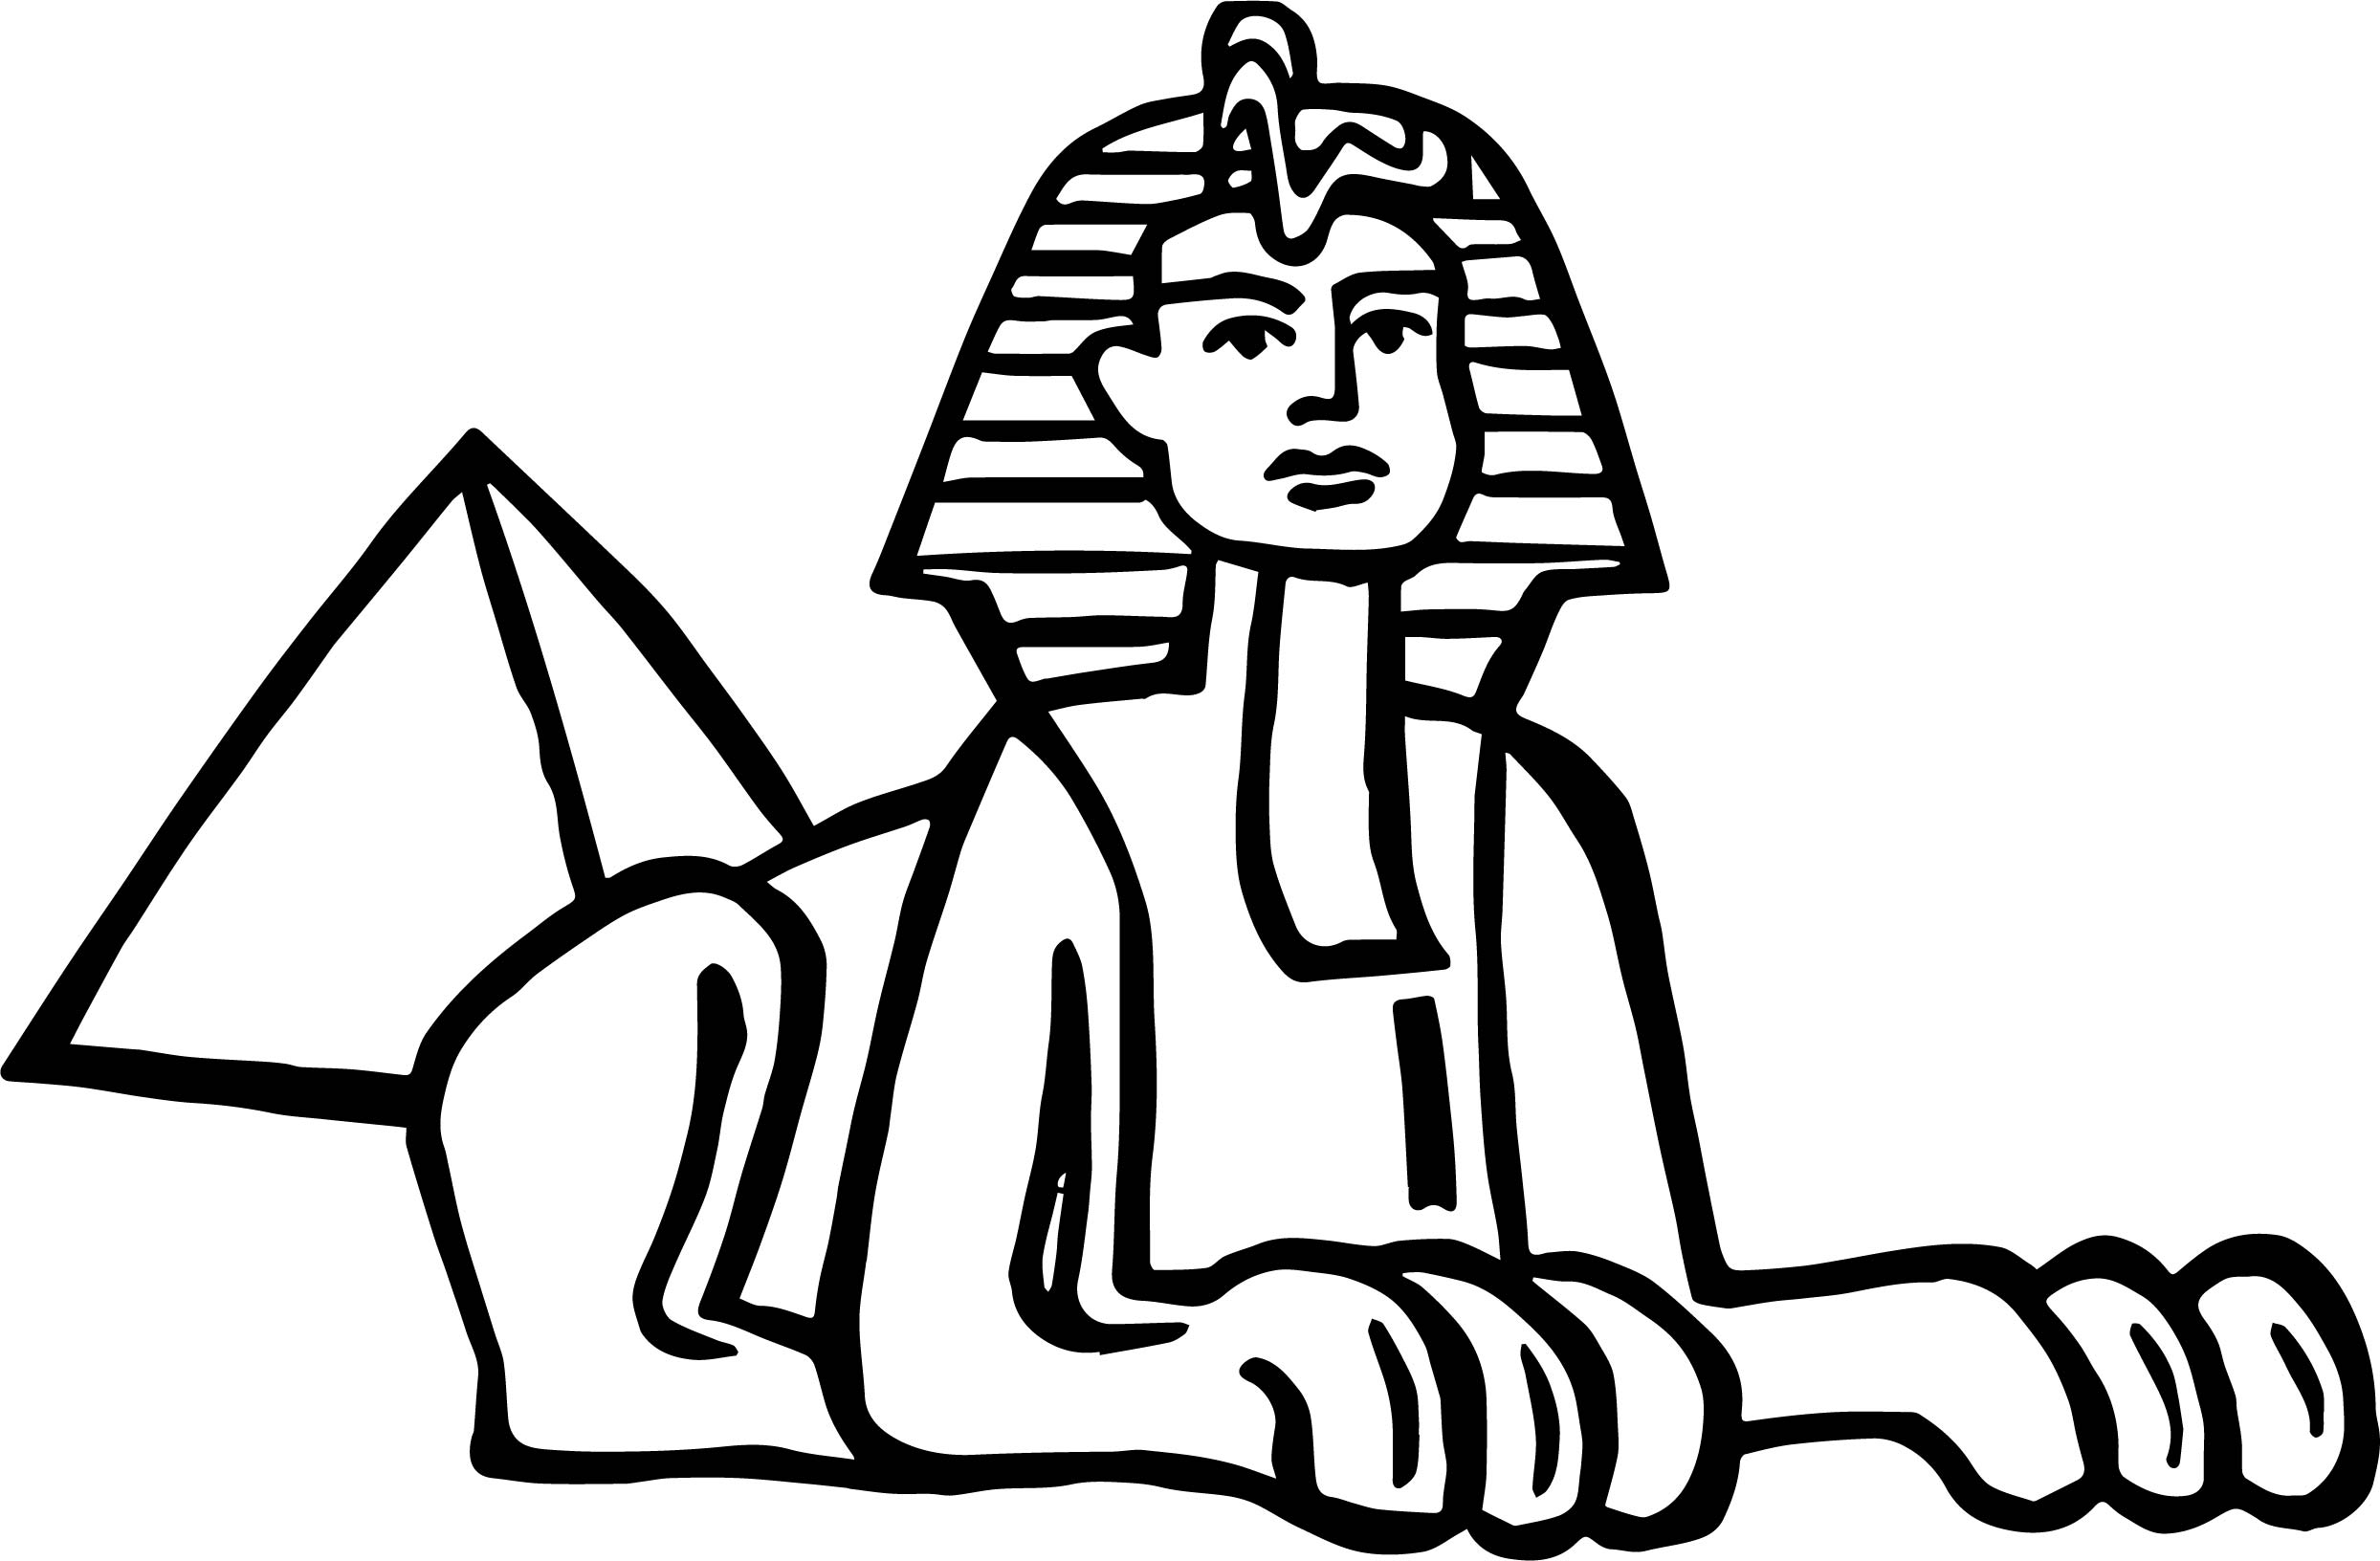 splendor sphinx in egypt coloring page wecoloringpage